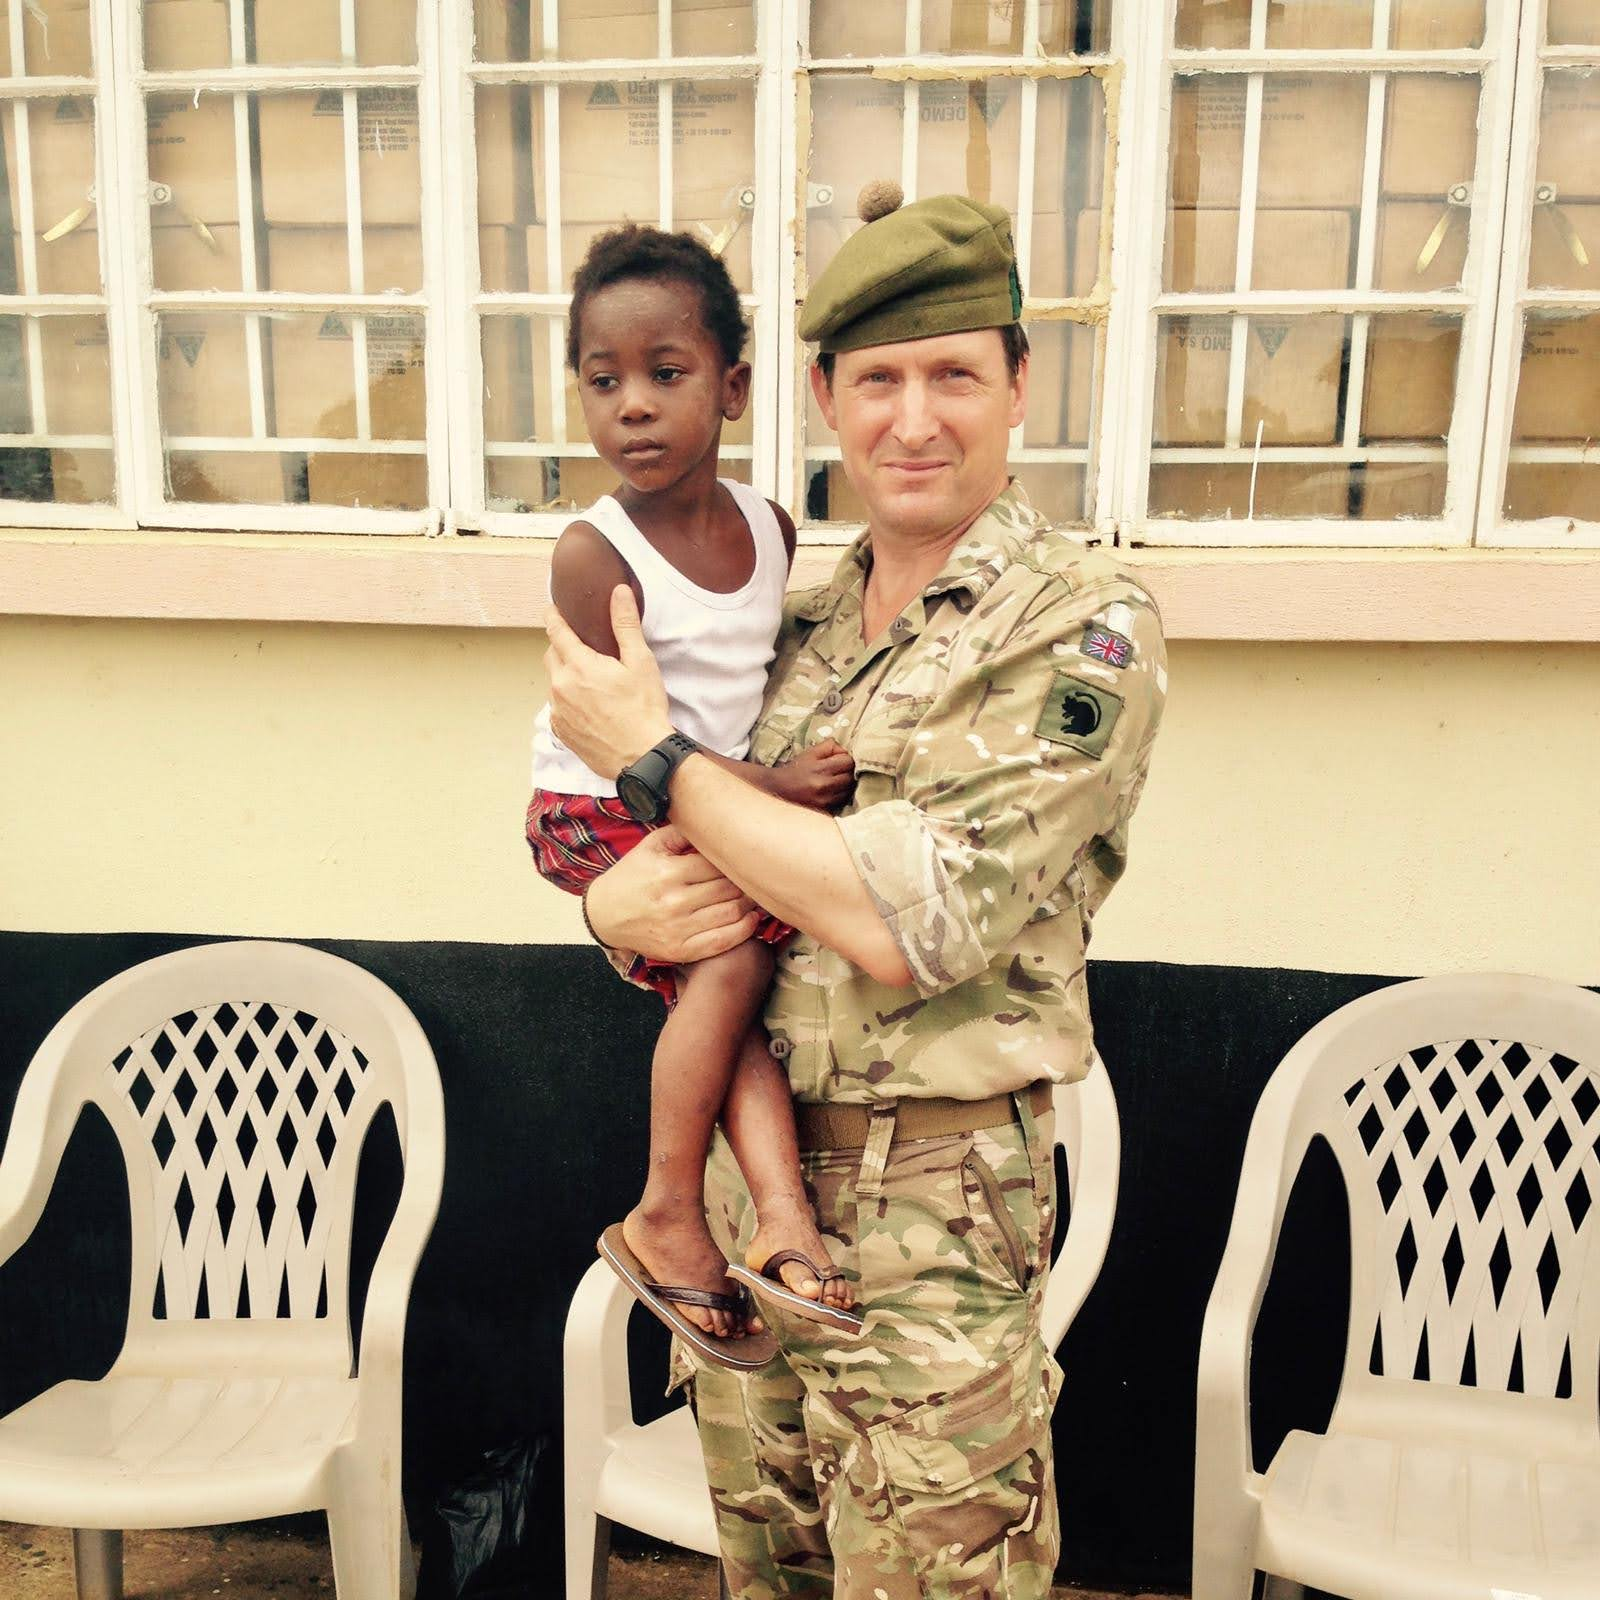 Maj Gen (Retd) Herbert with Child in Sierra Leone